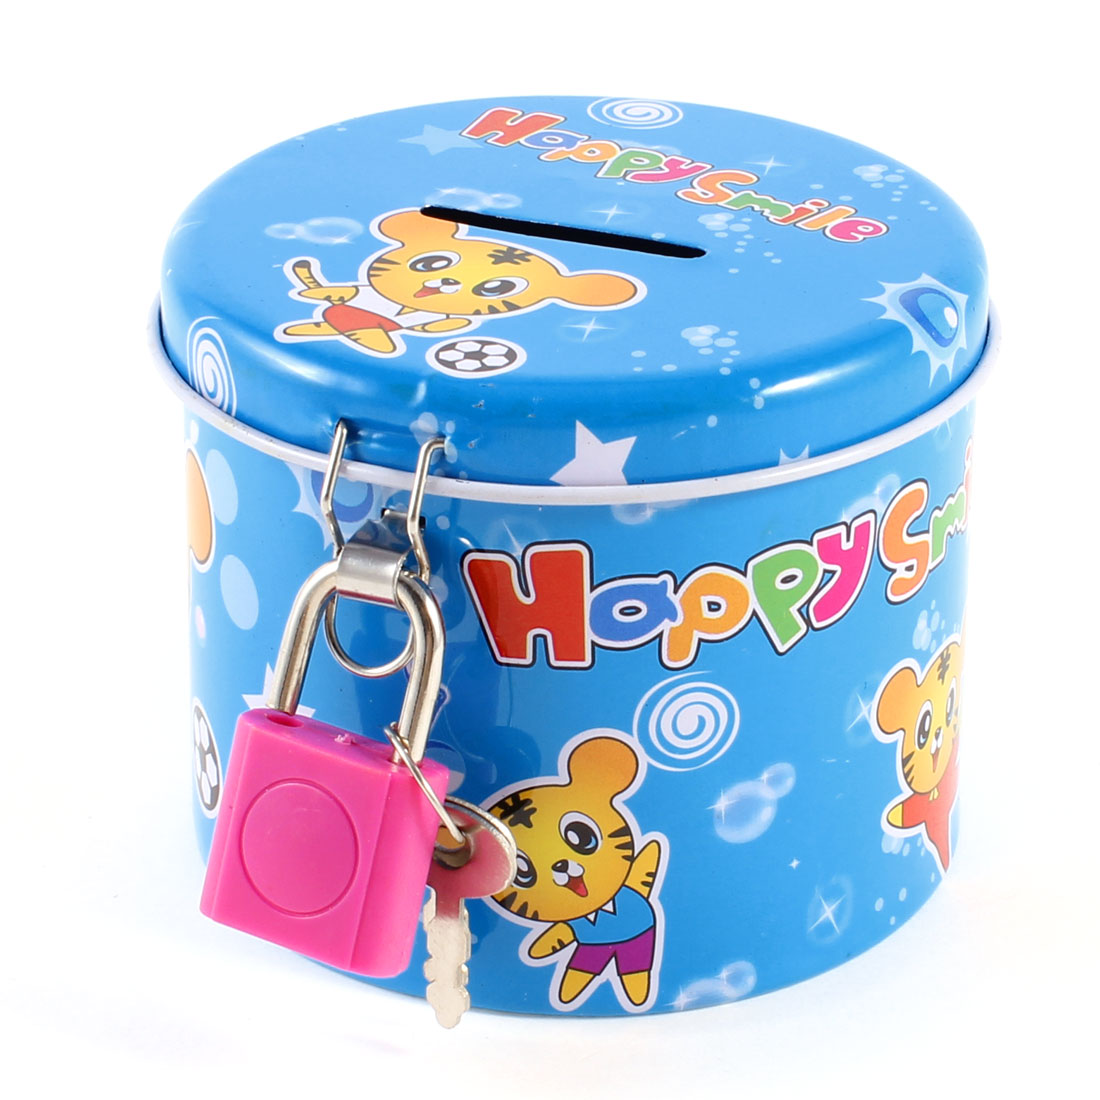 Cylinder Shape Coin Saving Money Box Piggy Bank Blue for Kids w Fuchsia Padlock